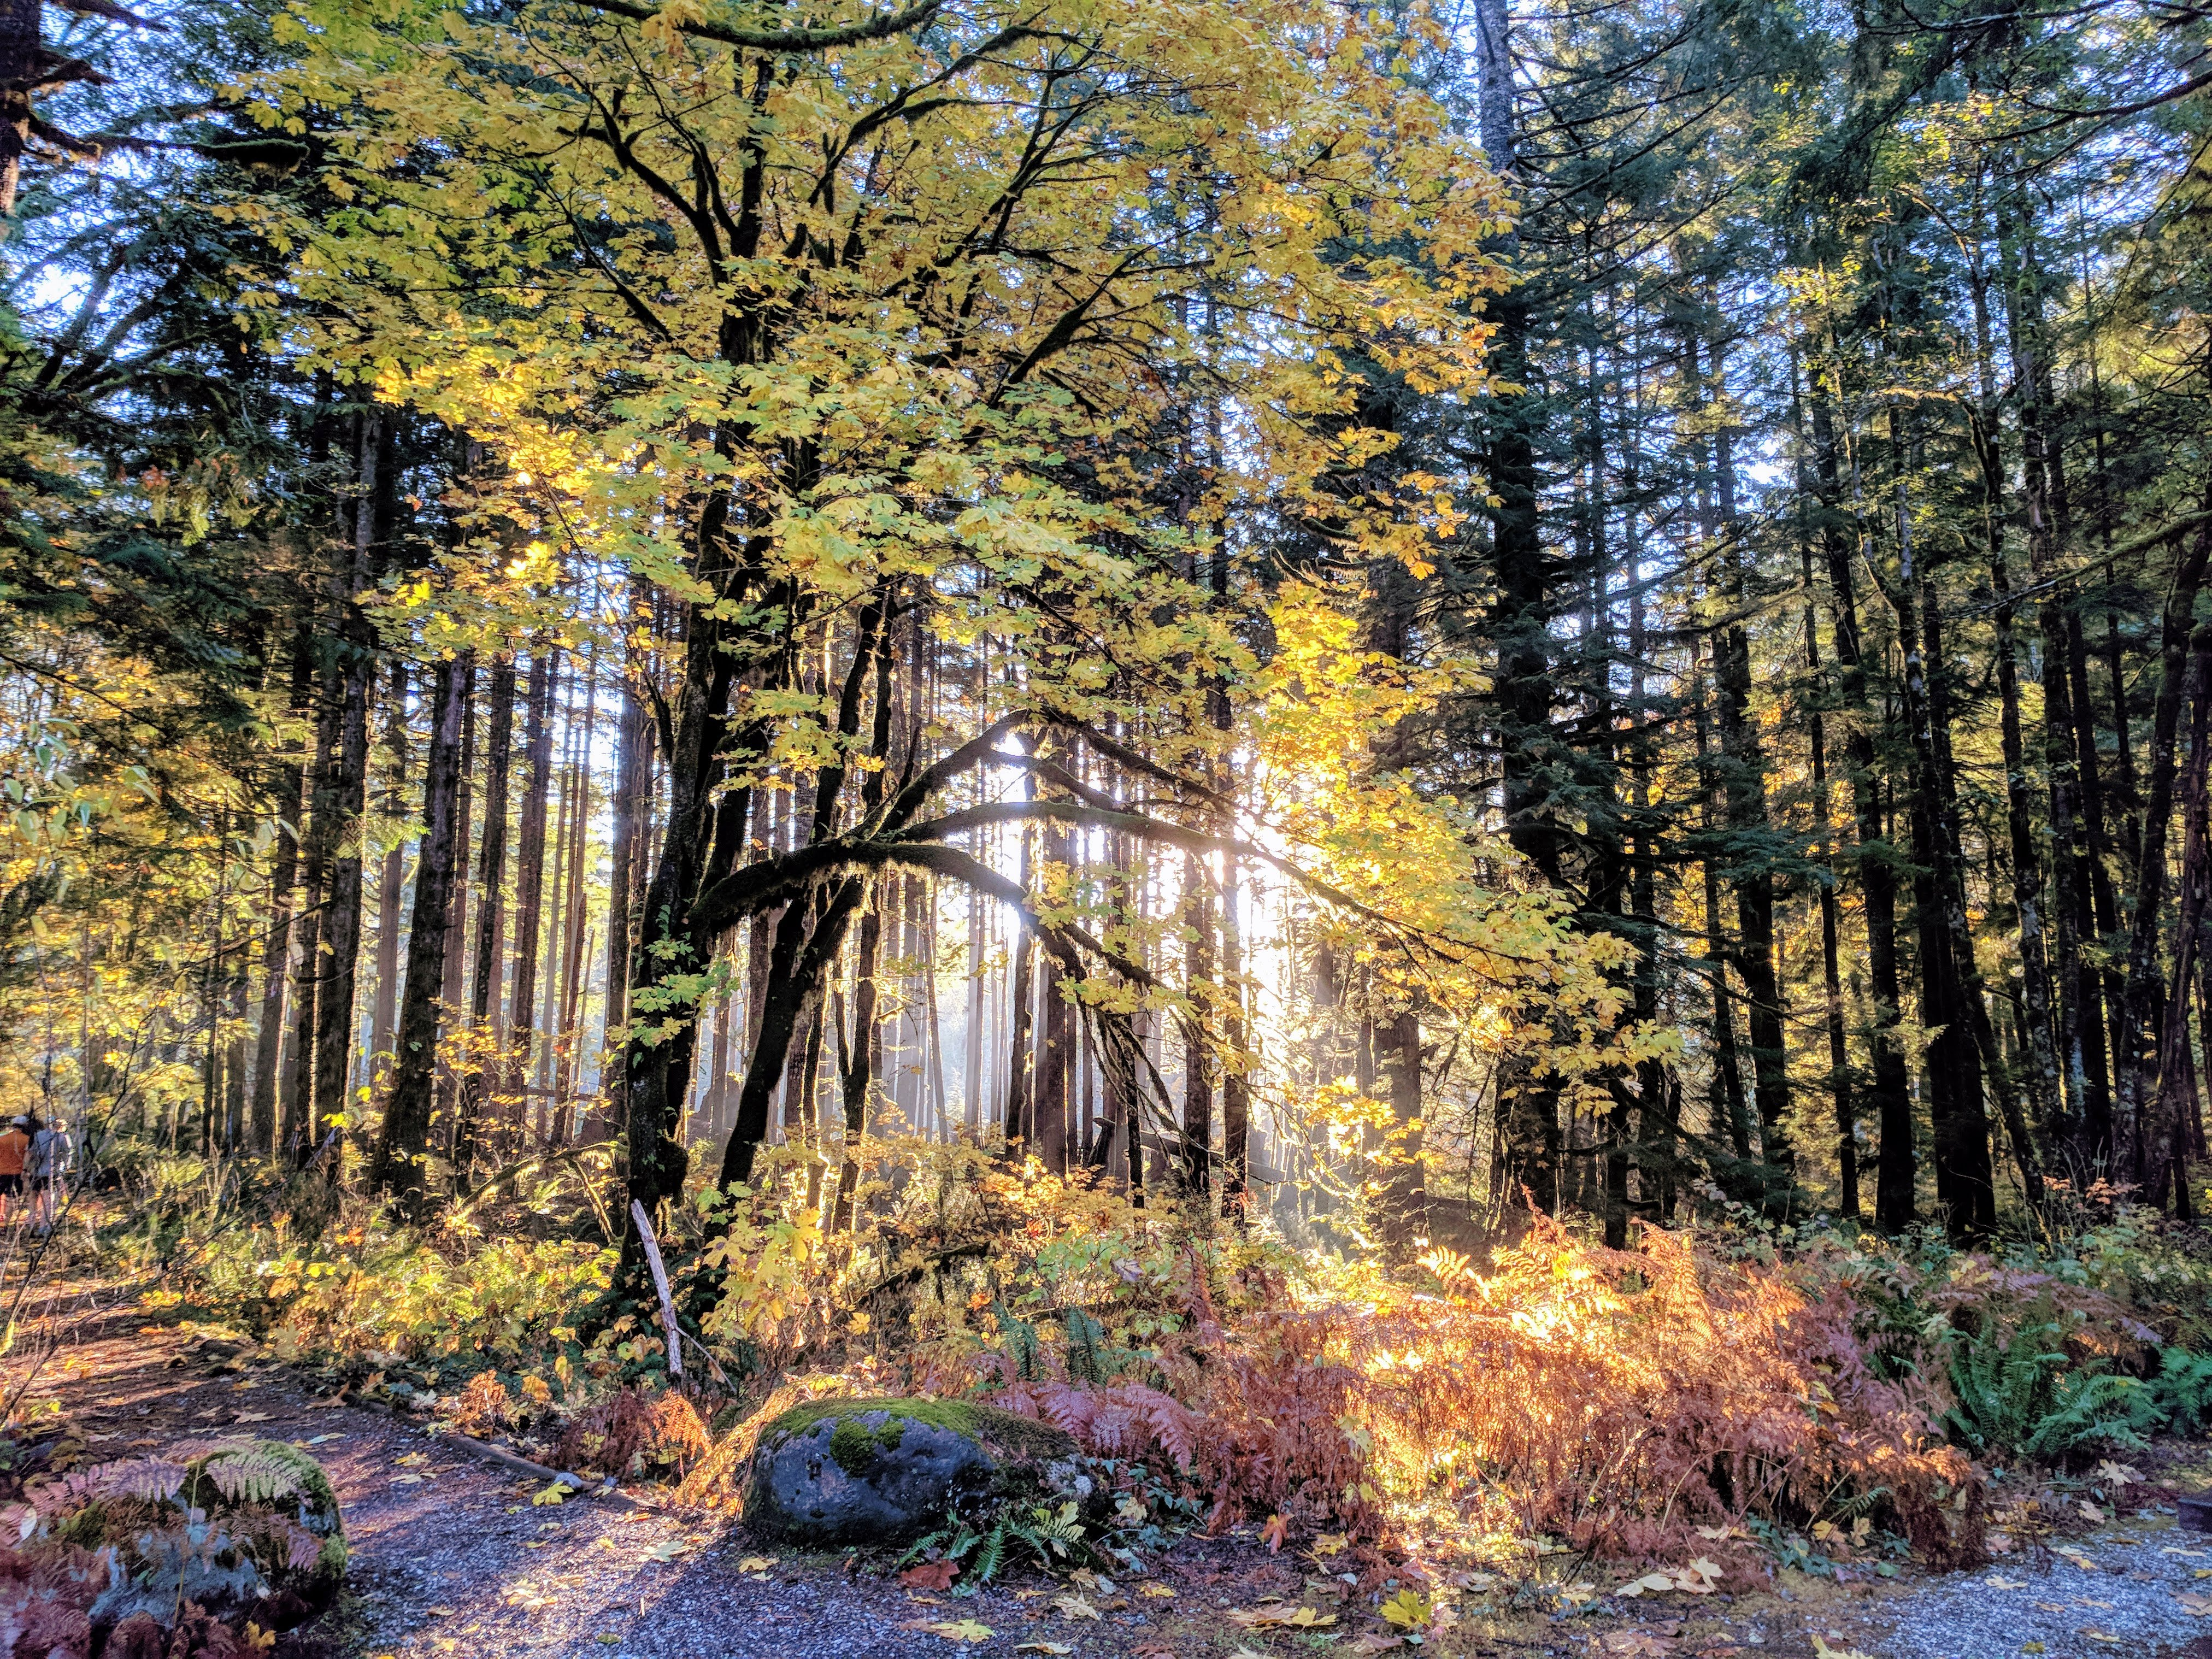 Contours: How do you put a value on a forest?